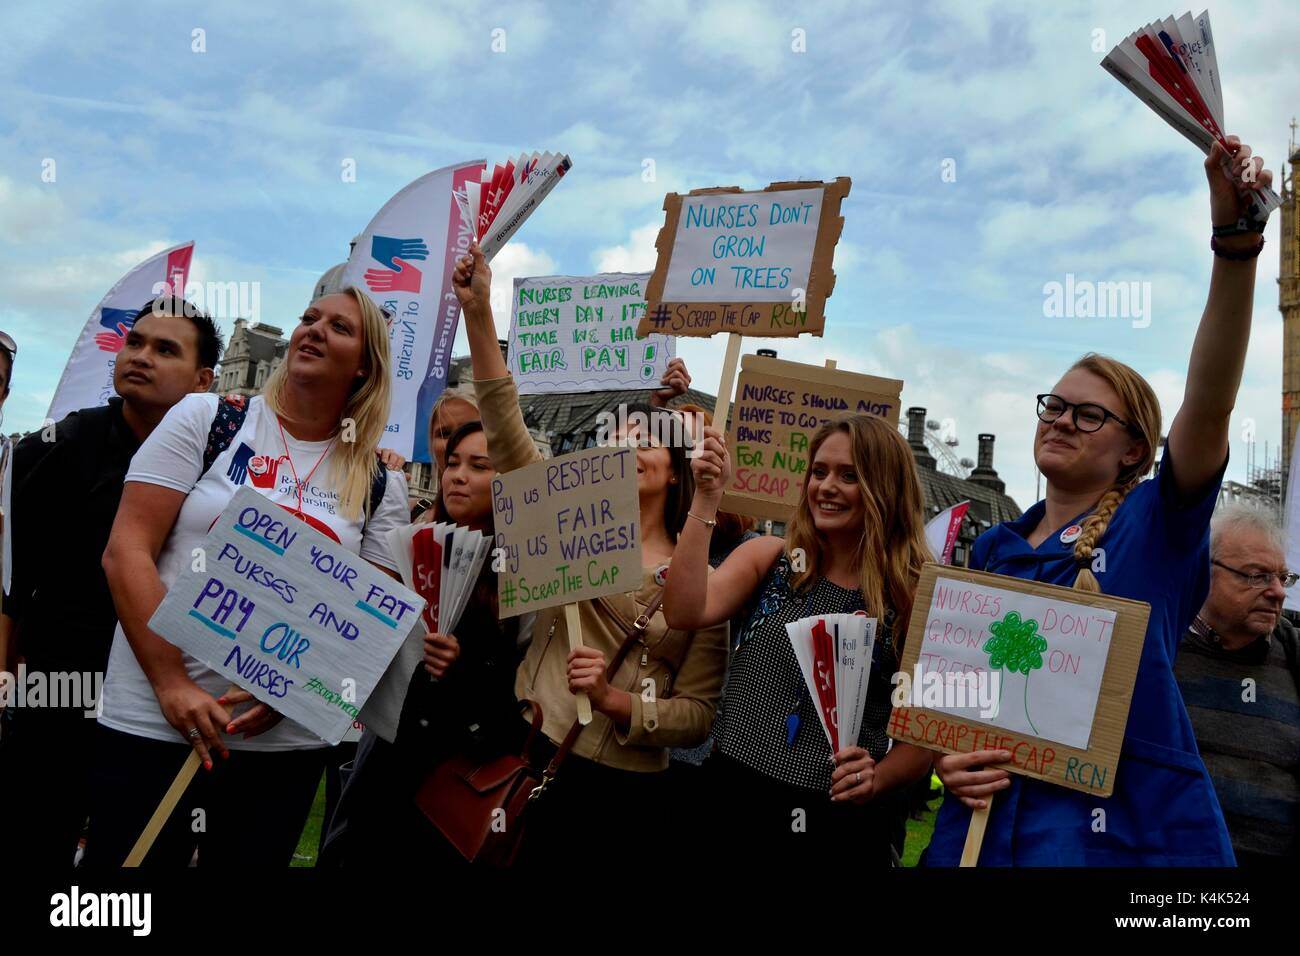 London, UK. 06th Sep, 2017. Thousands of nurses protest in Westminster, London against the pay cuts 6 September, - Stock Image